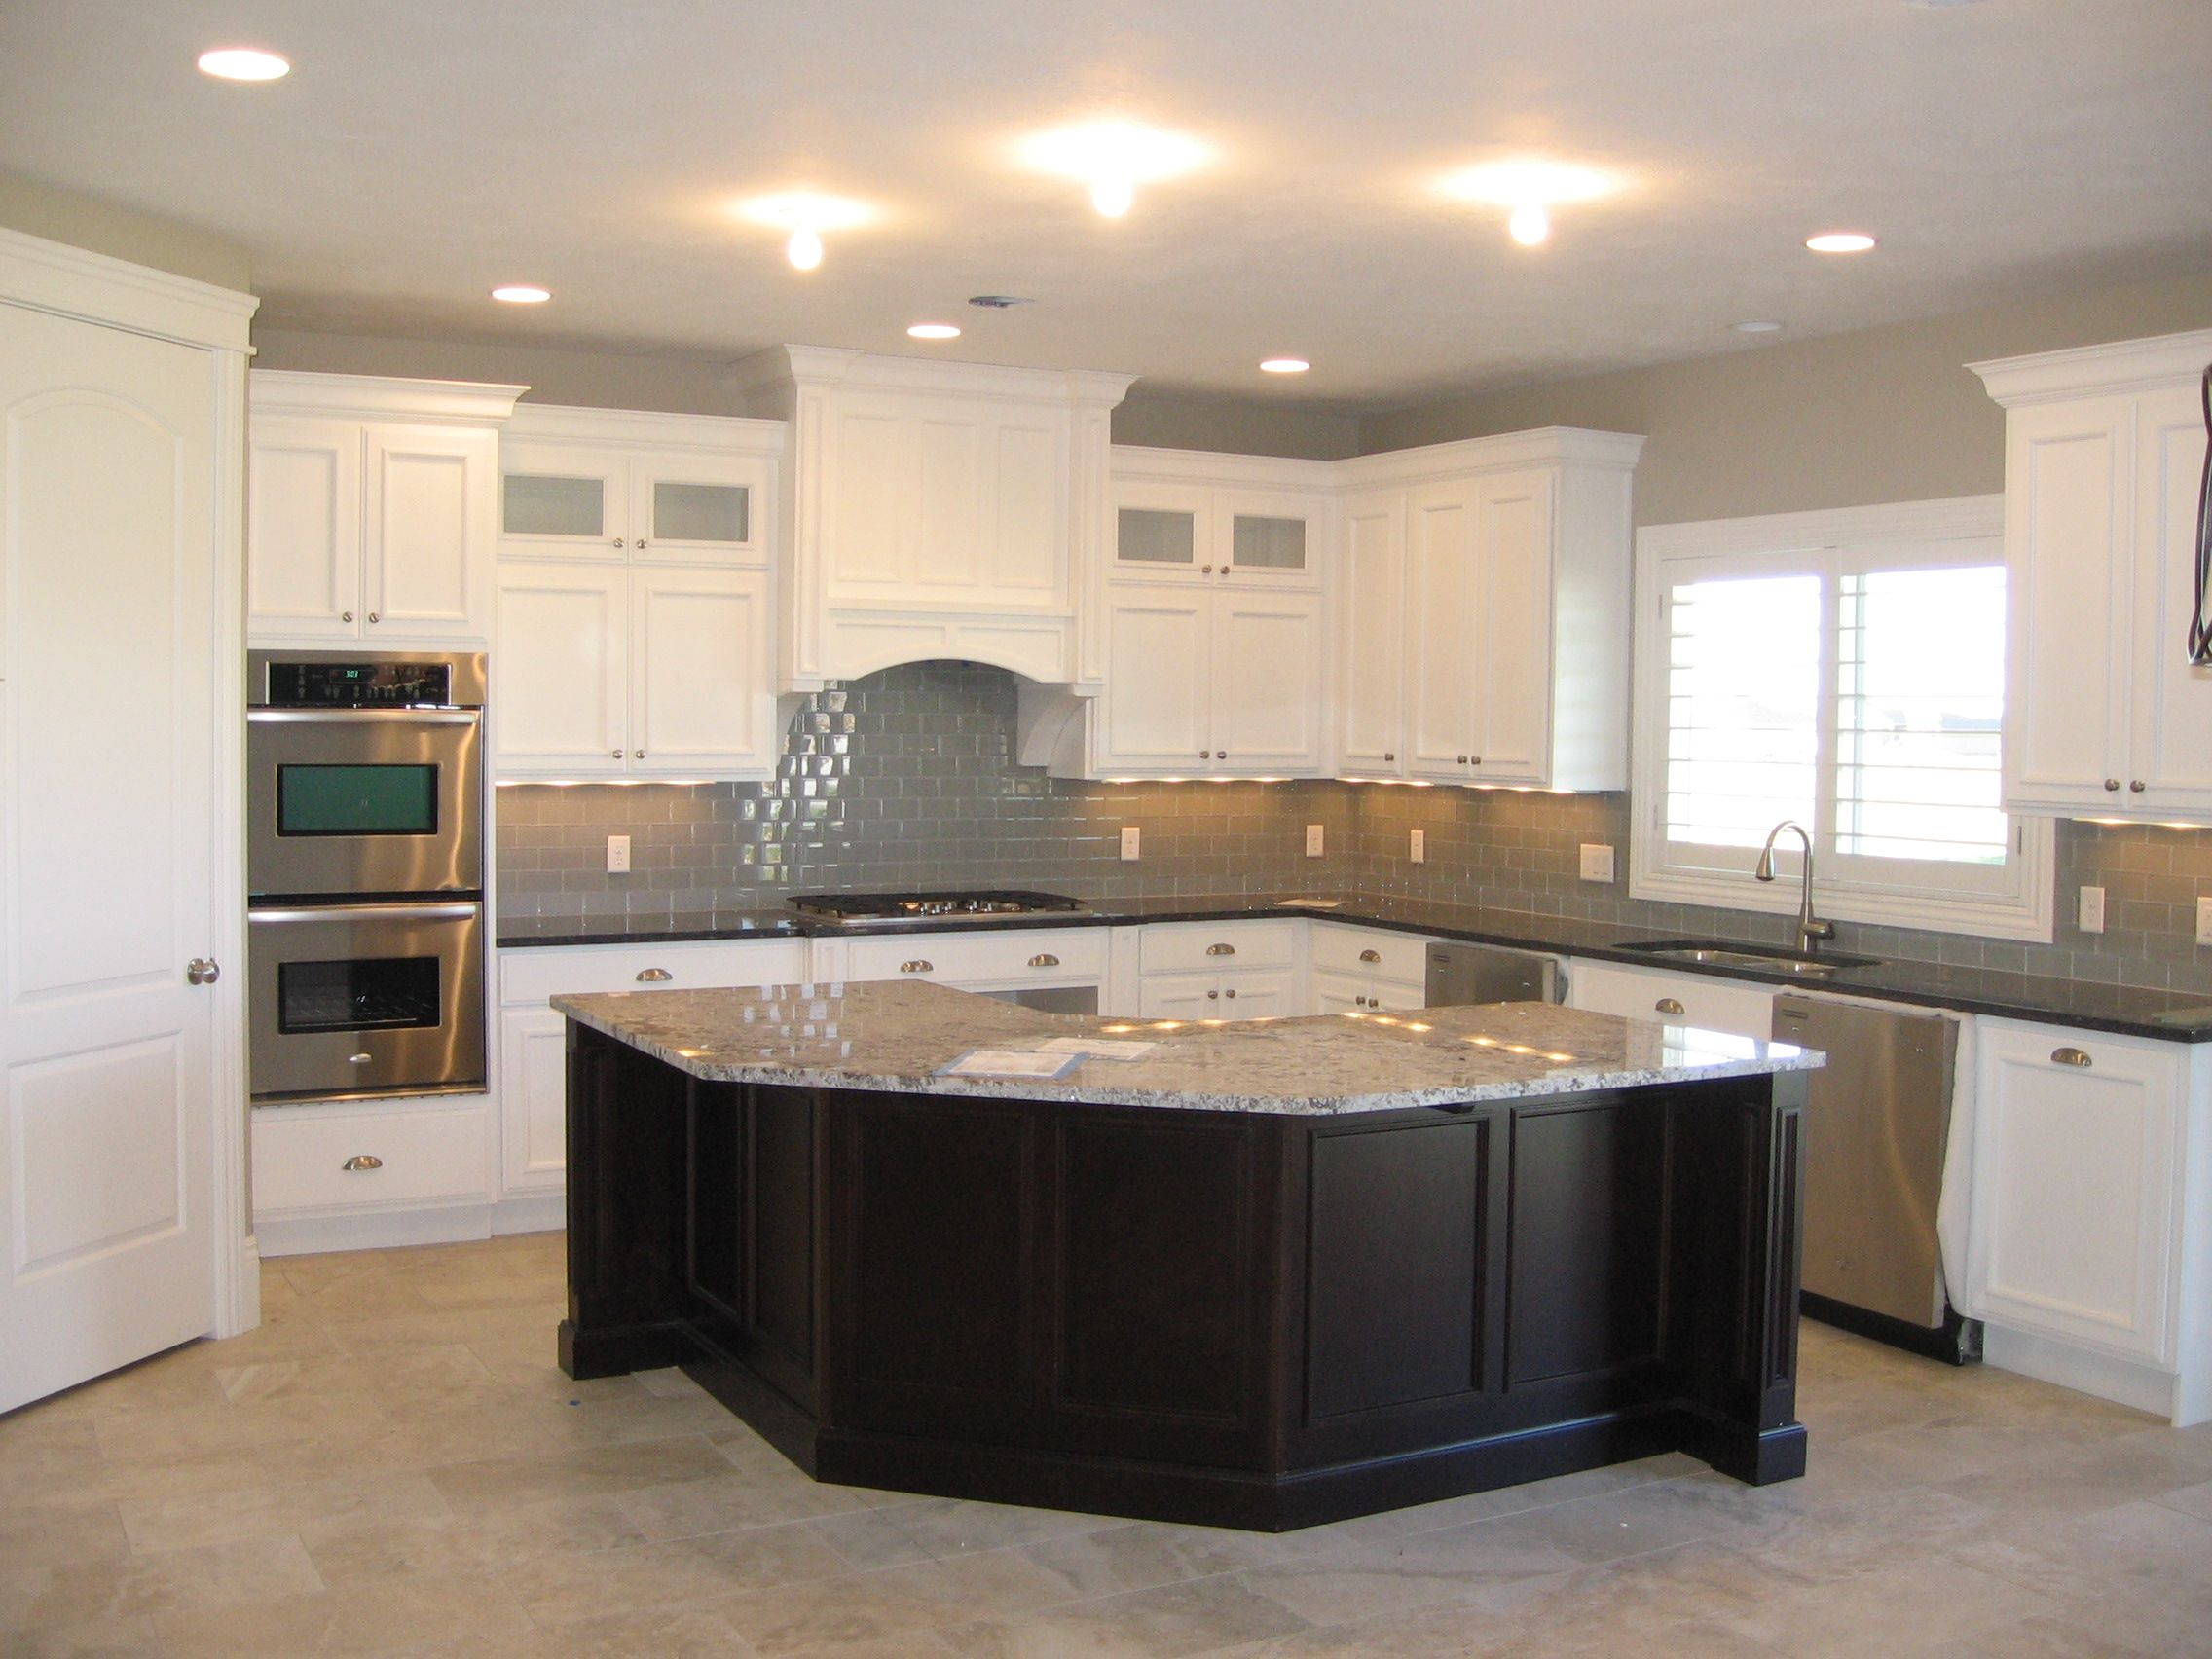 Grey Subway Tile White Cabinets And Dark Island Symphonyhomes